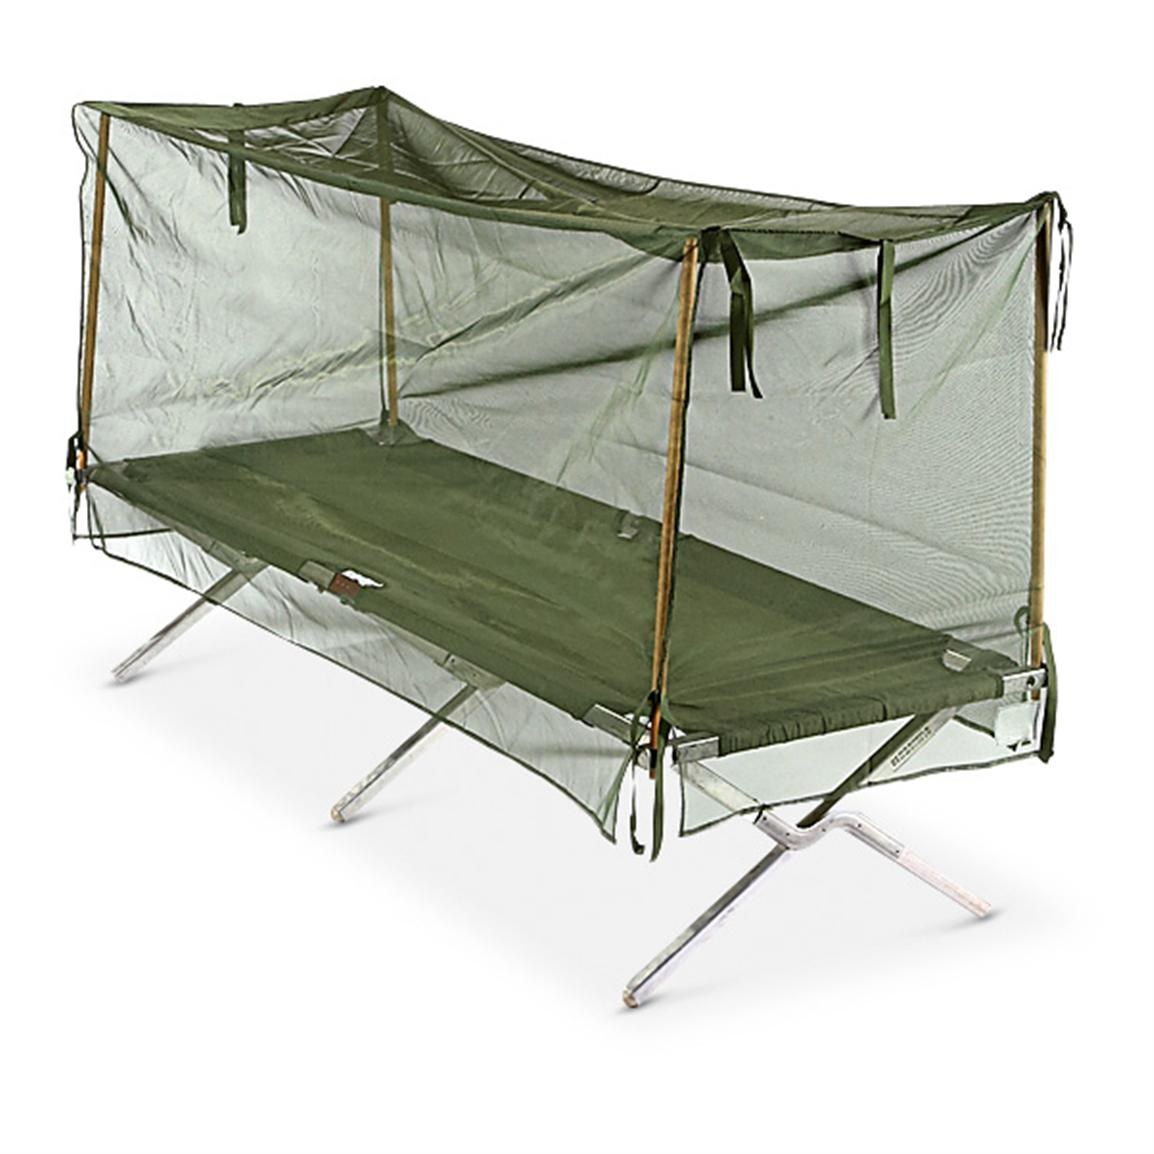 New U.S. Military Surplus Mosquito Net, Olive Drab